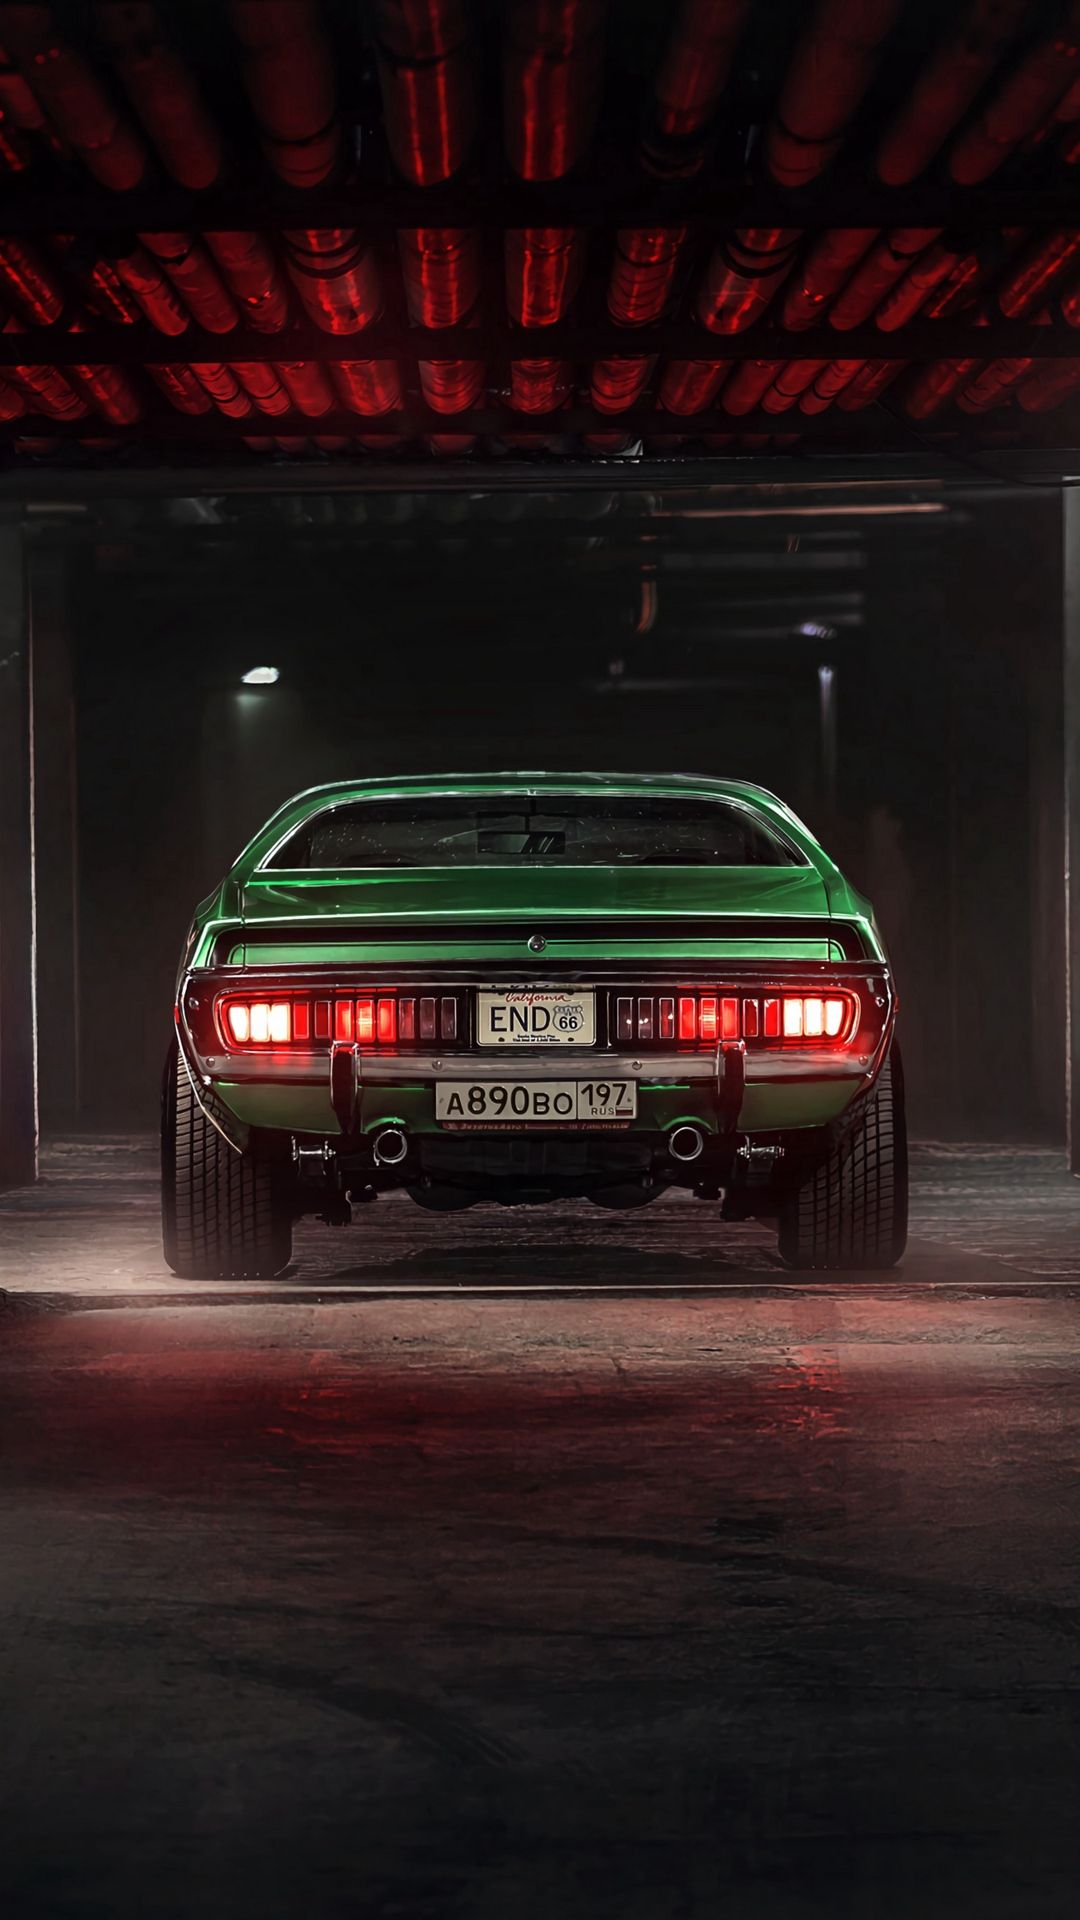 Bmw is strengthening its commitment to design through a new collaboration with swiss argentine designer alfredo häberli that is set to be unveiled in milan during the salone del mobile this coming april. 1080x1920 Wallpaper Car Garage Tuning Green Rear View Car Iphone Wallpaper Bmw Wallpapers Best Muscle Cars